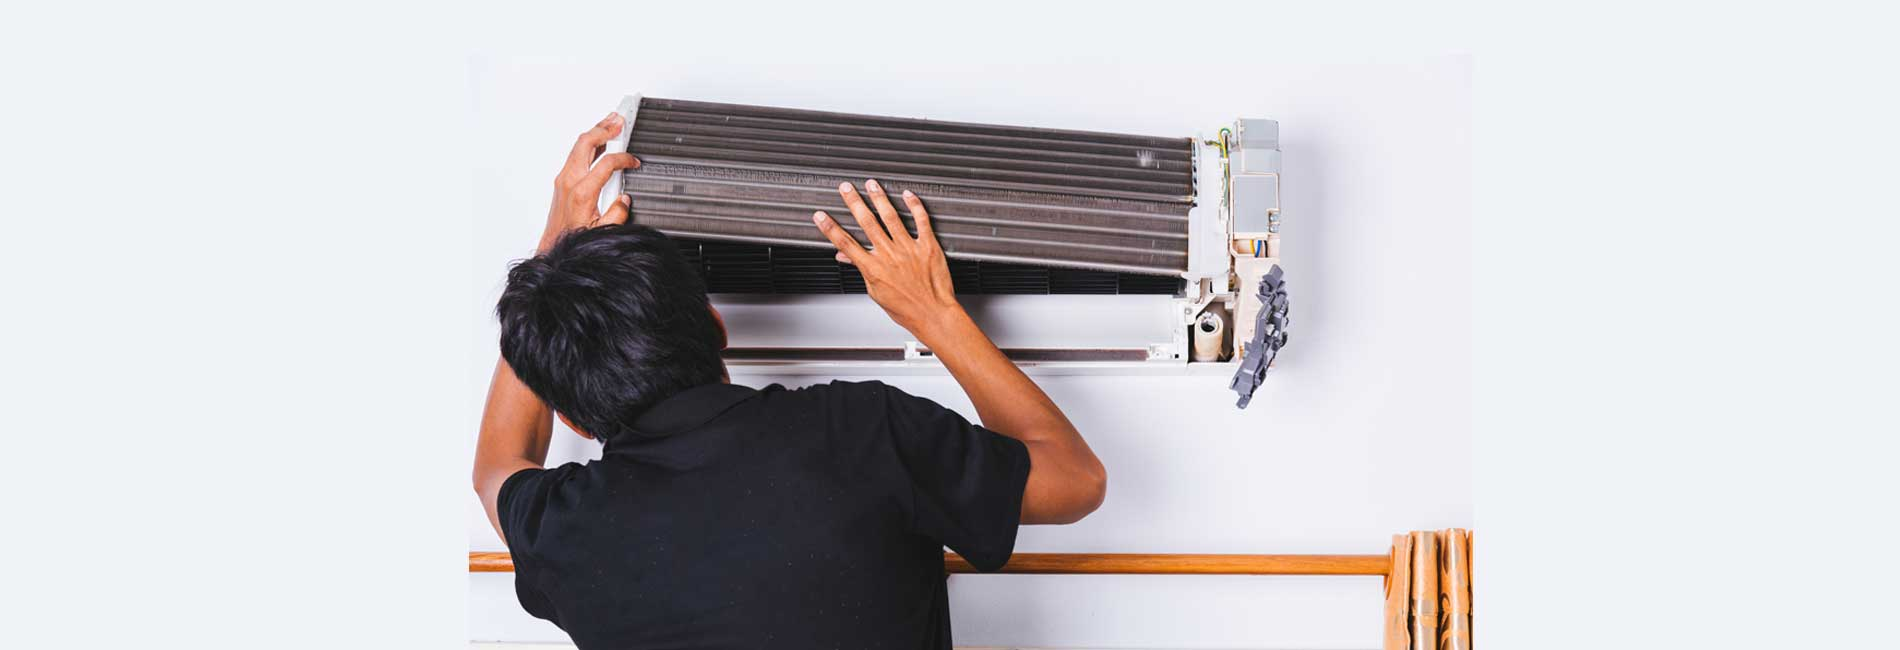 Hitachi AC Repair in Vanagaram